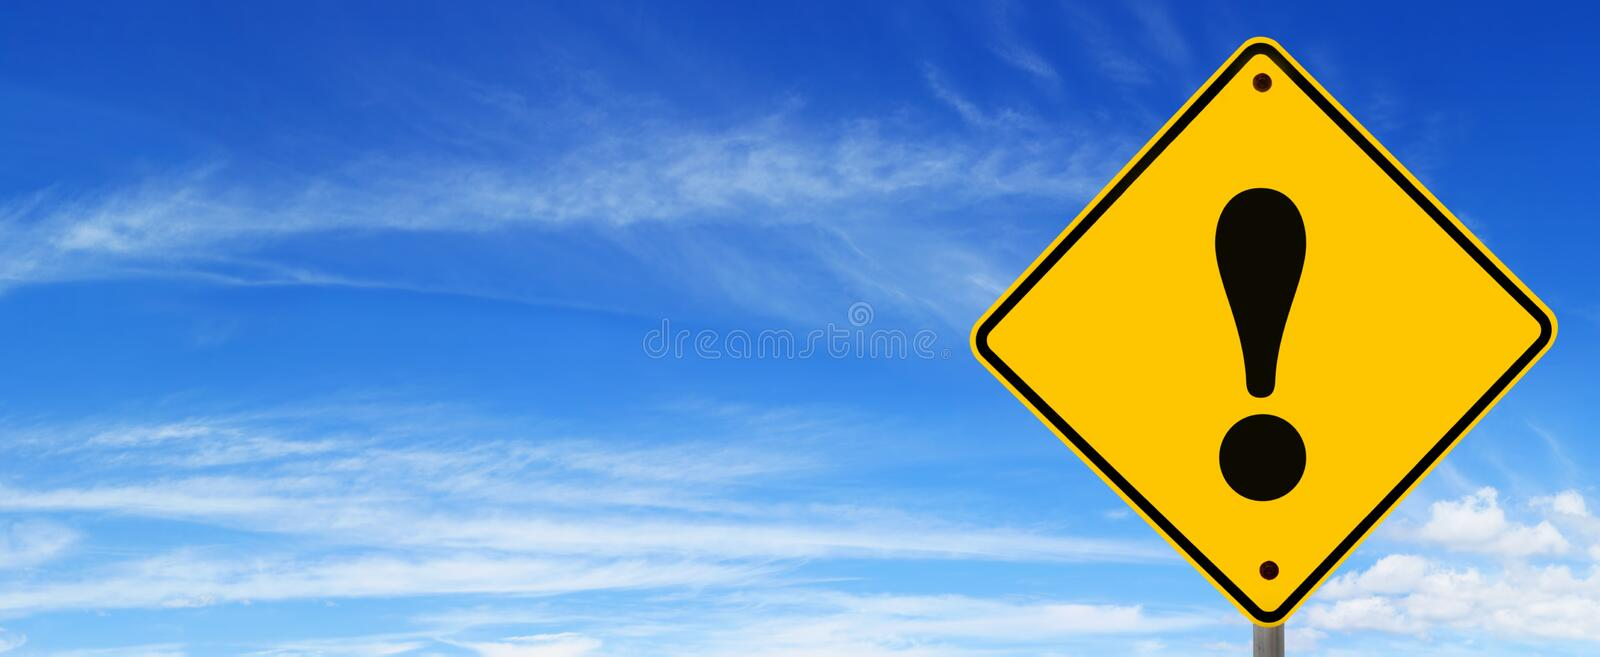 Download Road Sign Warning stock image. Image of exclamation, photograph - 14861113